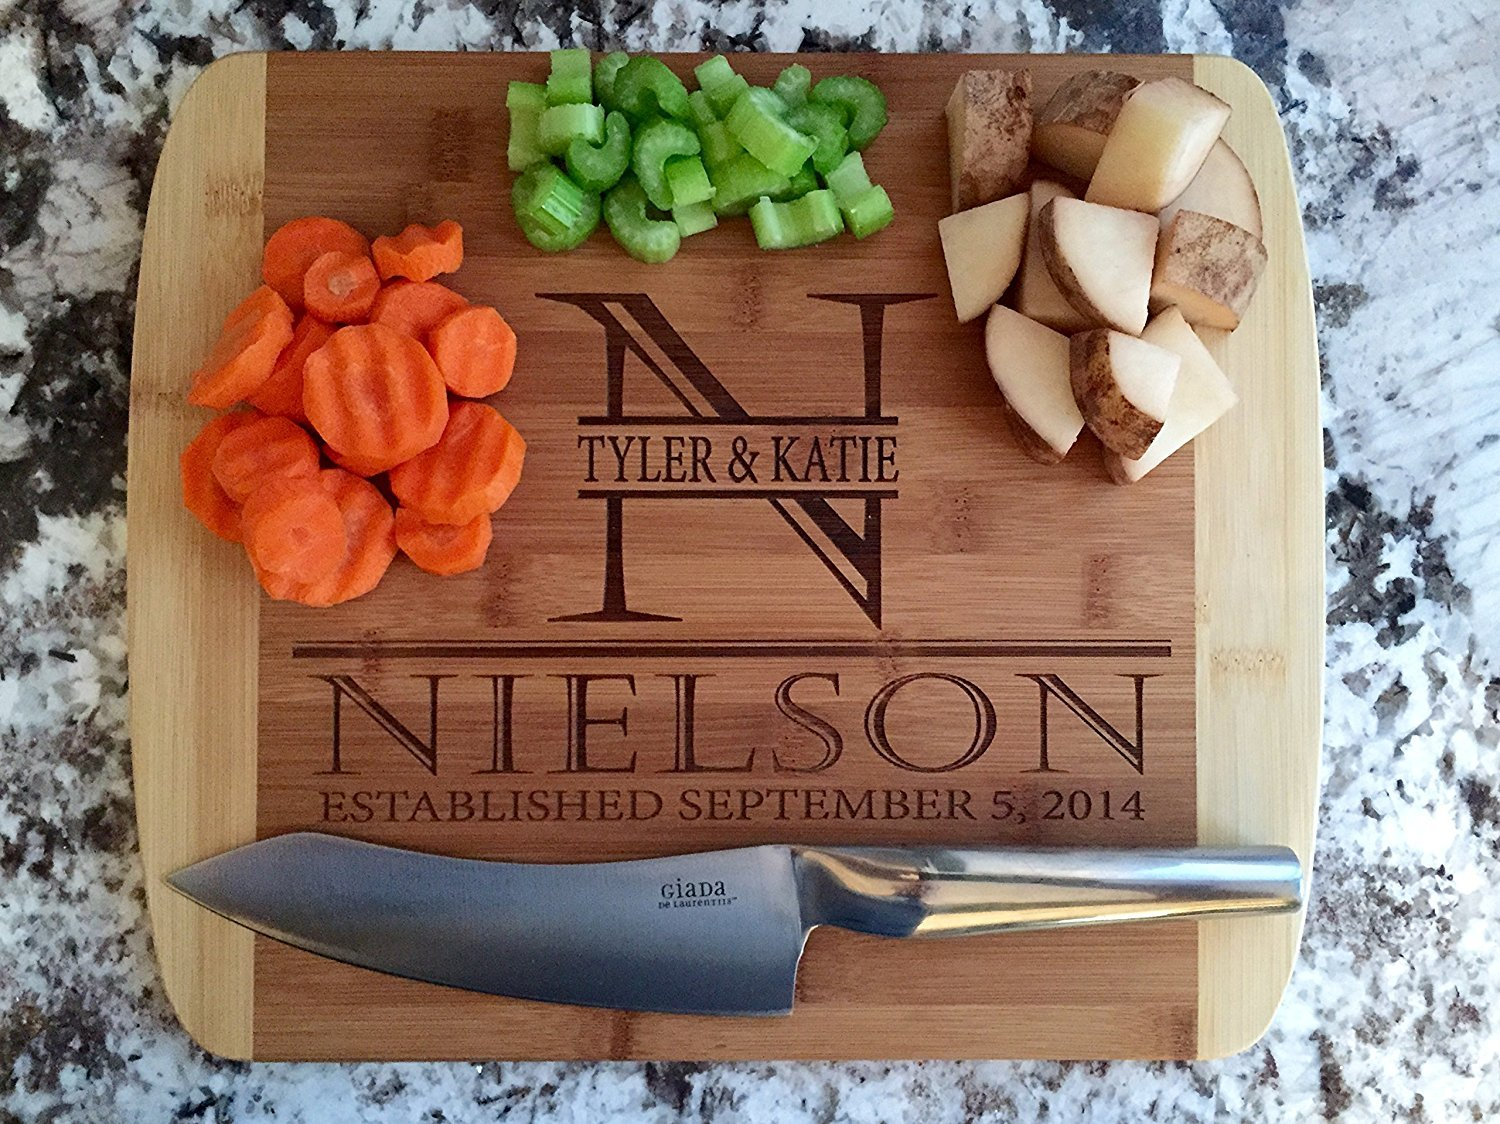 Personalized Cutting Board for Wedding Gifts - Wood Cutting Boards, Also Bridal Shower and Housewarming Gifts (11 x 14 Two Tone Bamboo with Curved Edges, Nielson Design)